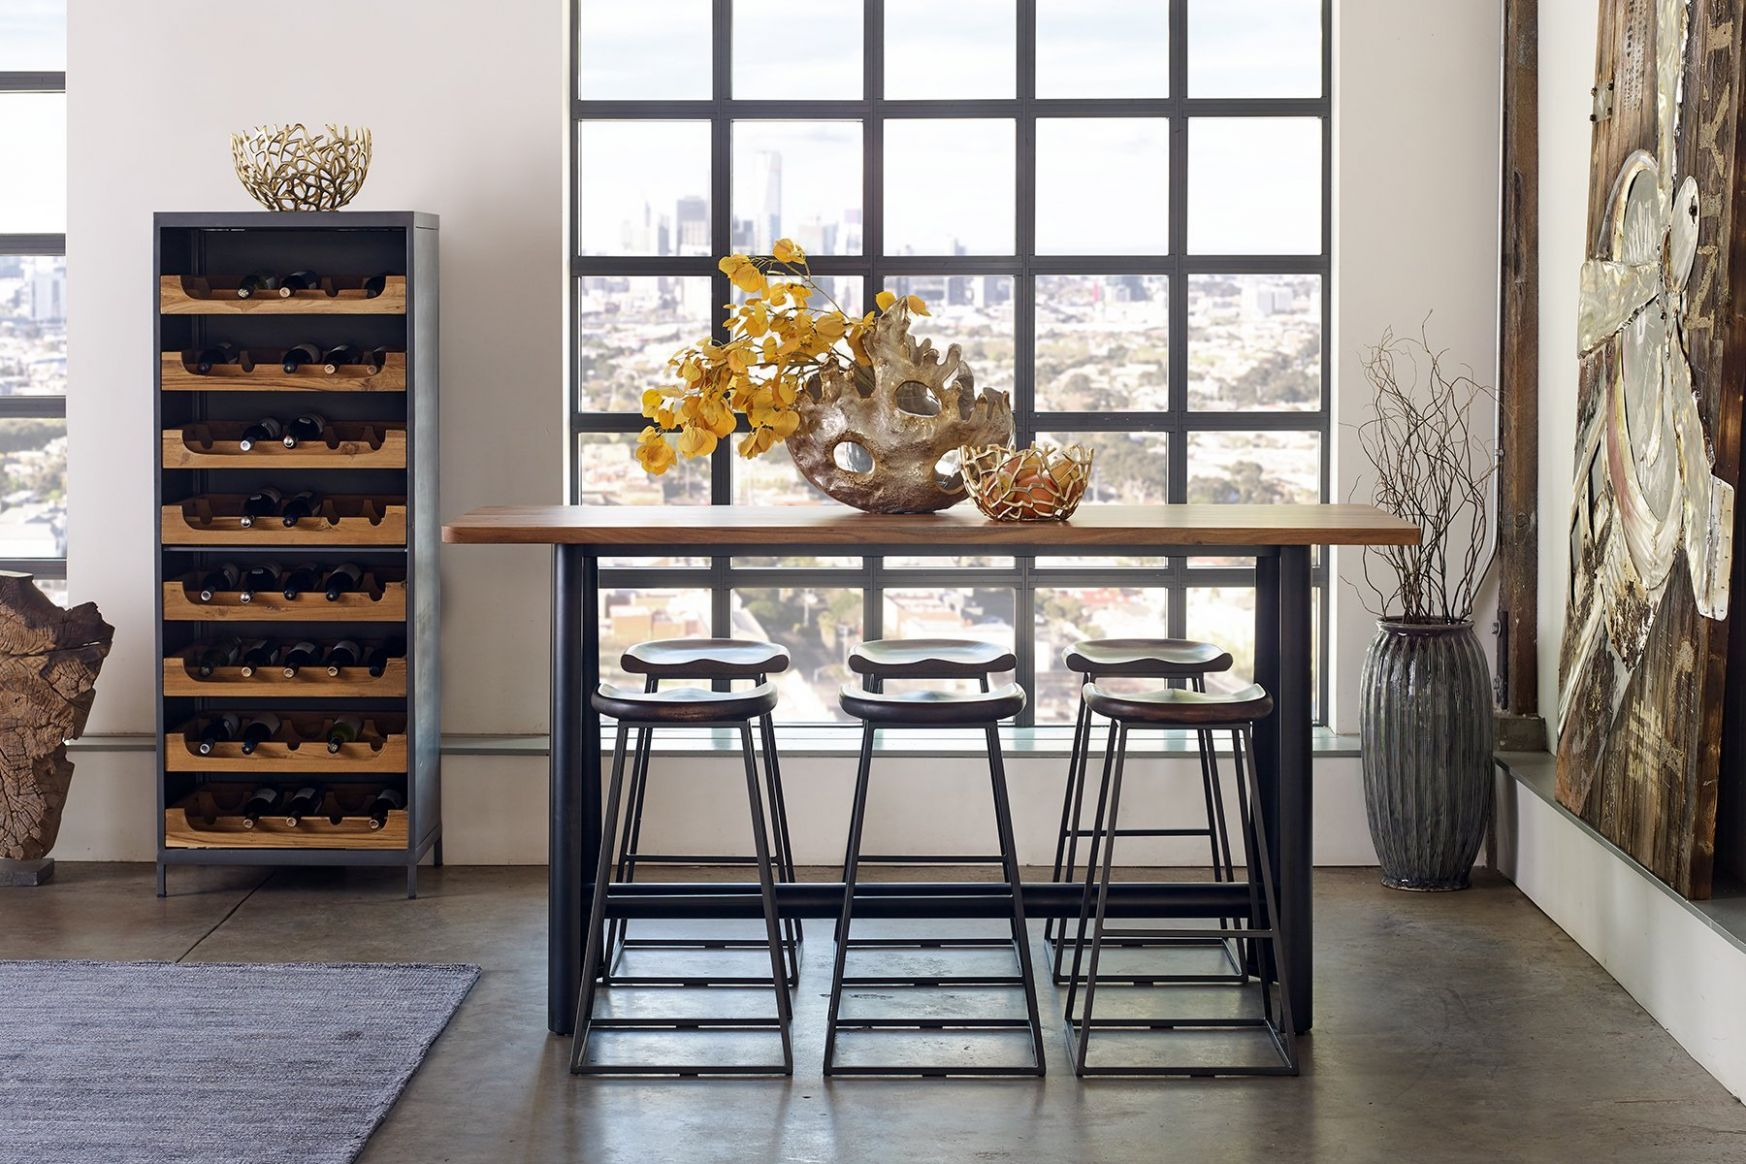 RUSTIC STOOLS BY INTRUSTIC HOME DECOR – Warehouse C Furniture - home decor warehouse